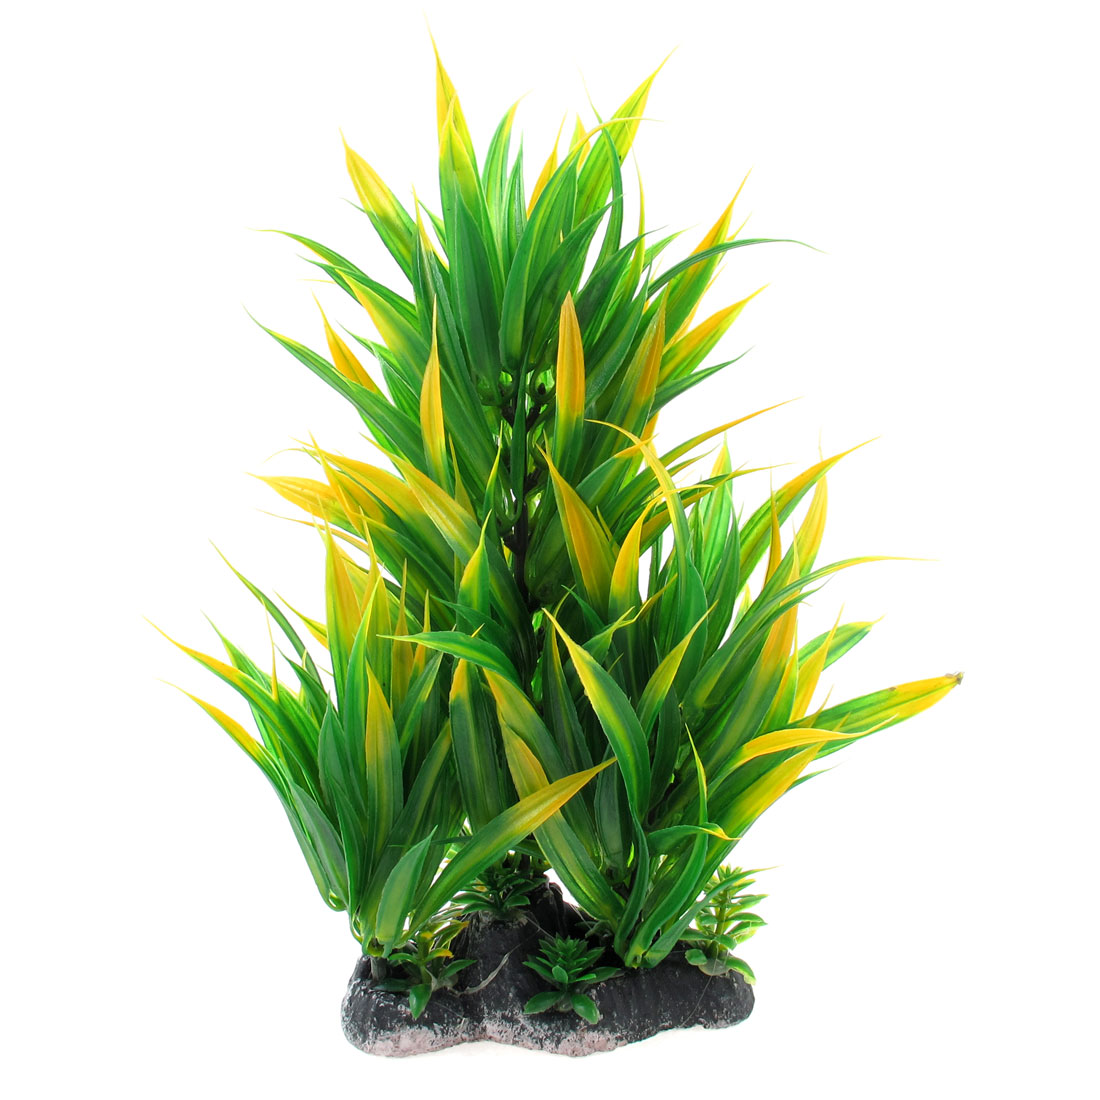 27cm Height Green Yellow Plastic Aquarium Ornament Underwater Grass Plants